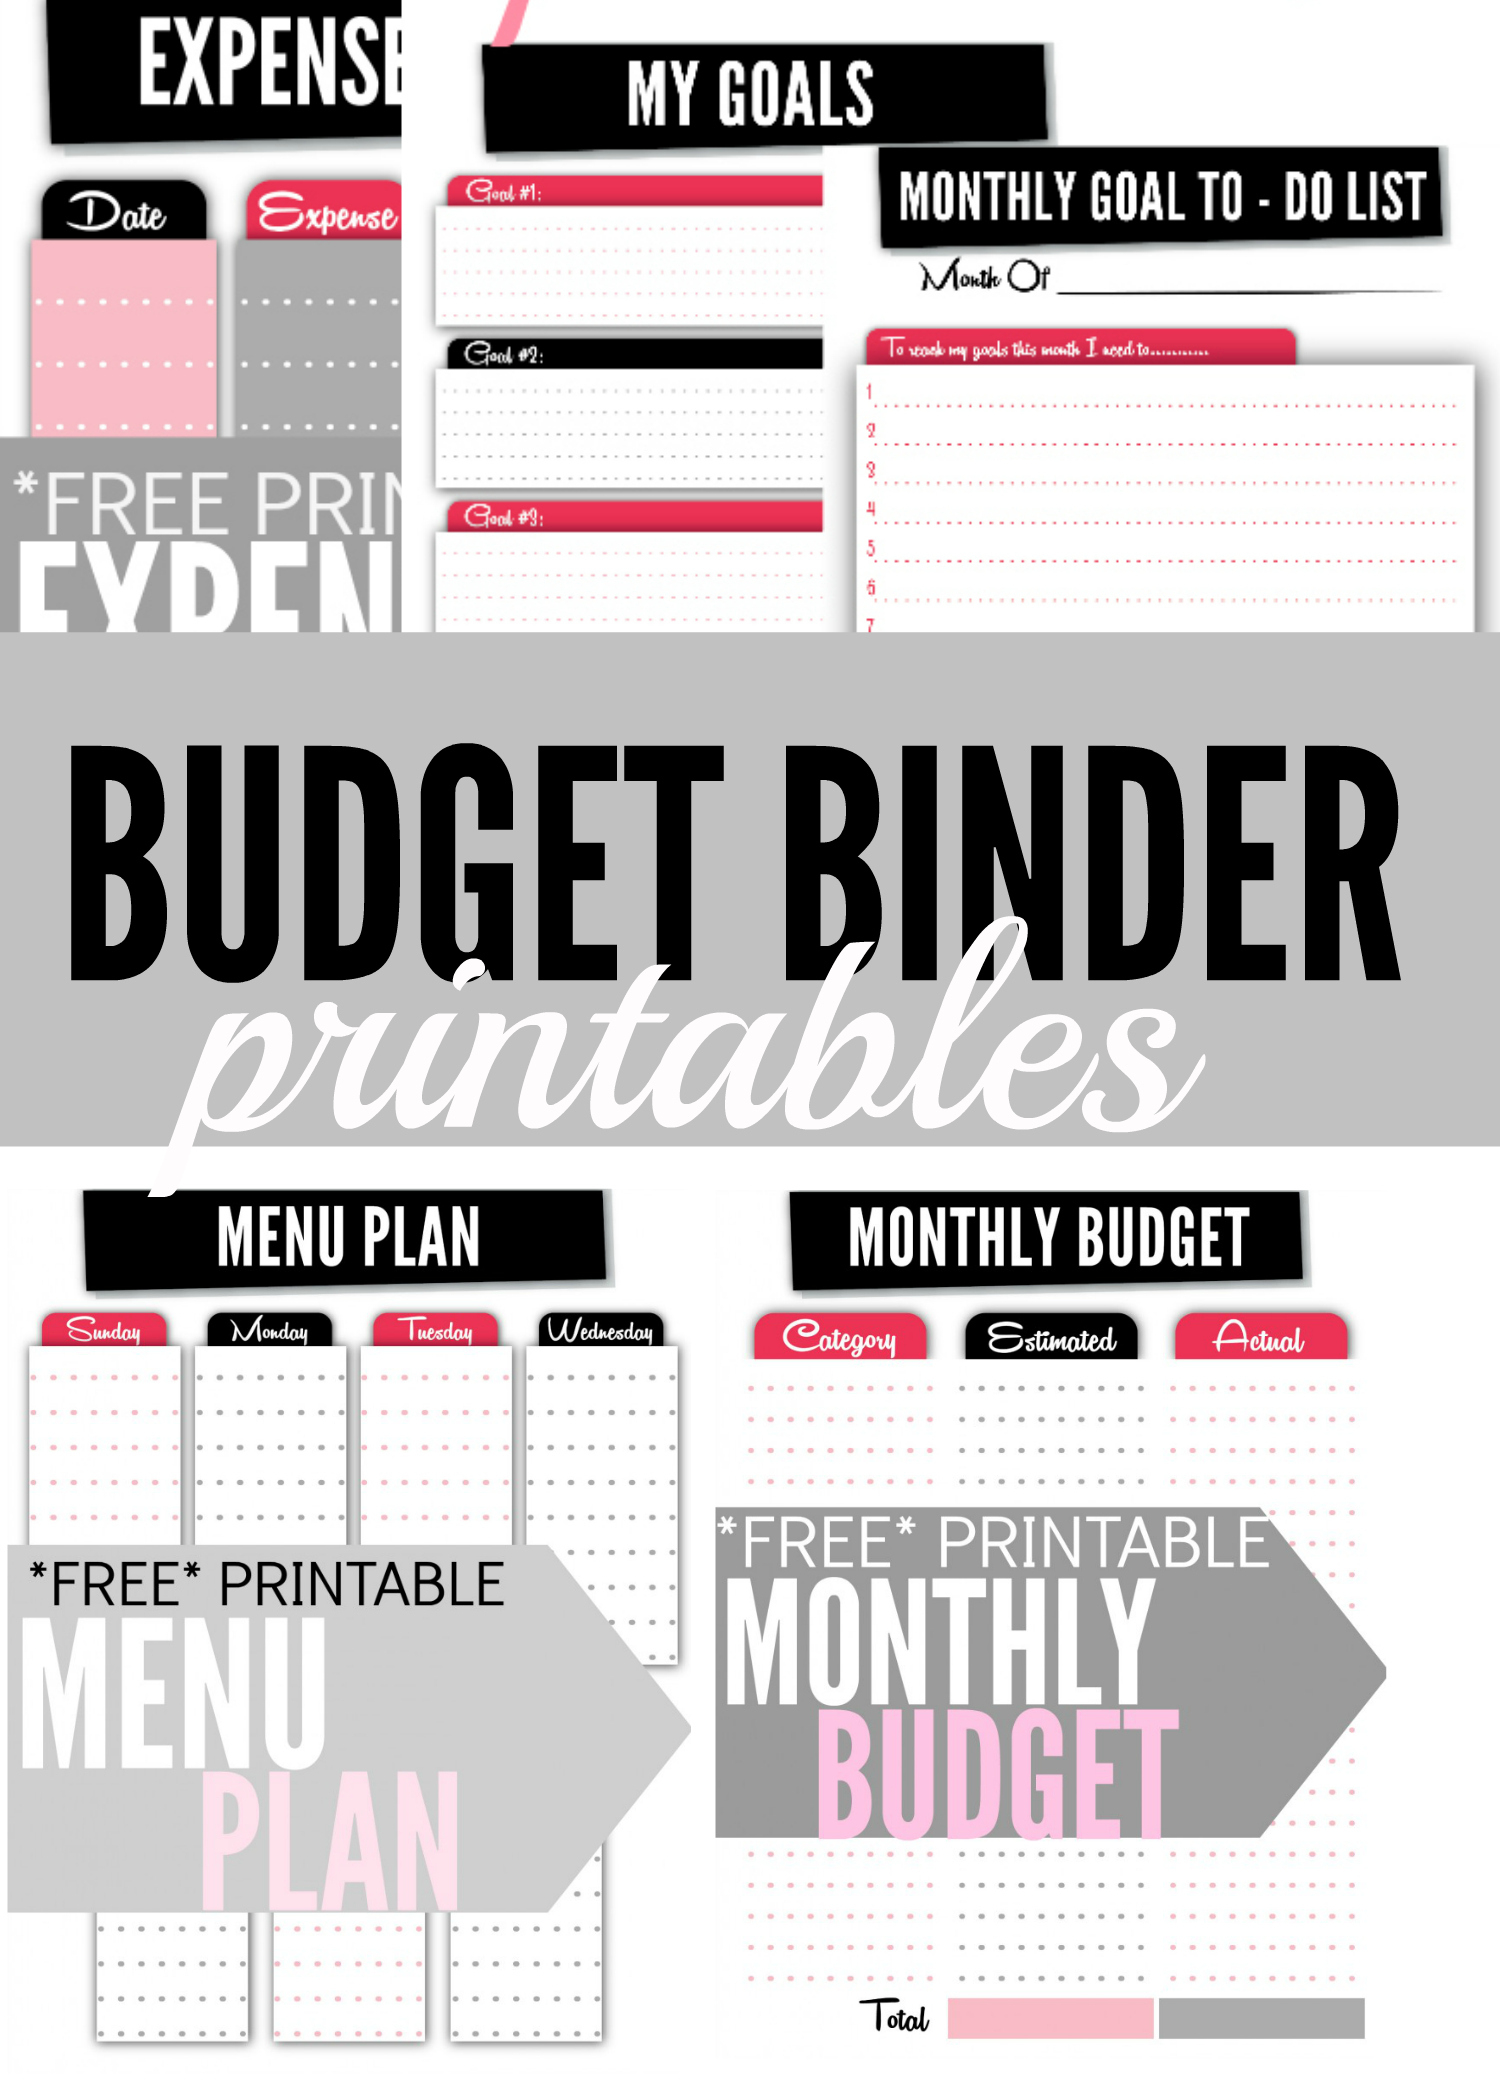 Budget Binder Printables - Single Moms Income | Printable Budget Binder Worksheets